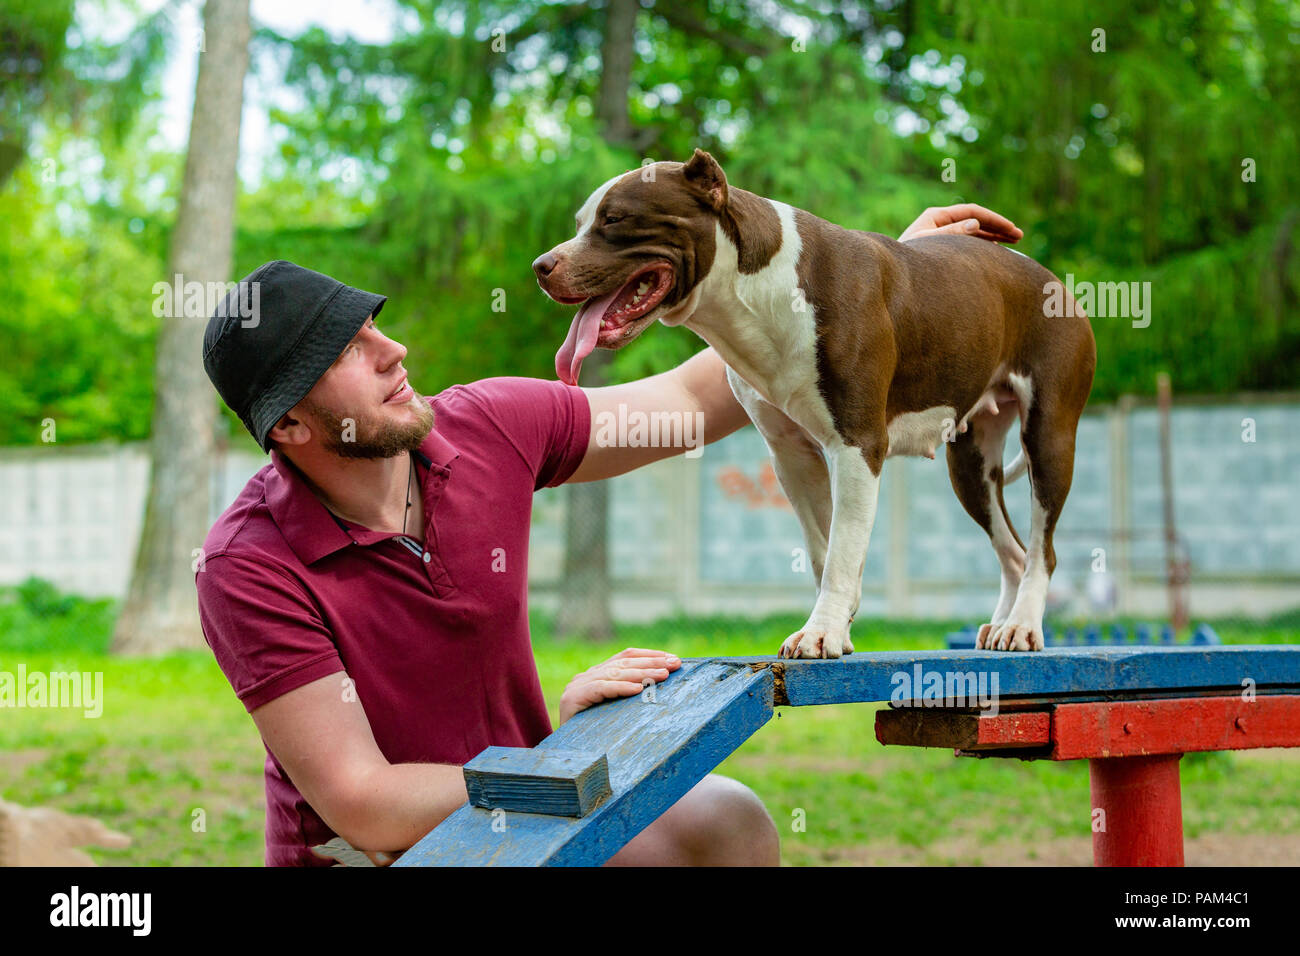 Master and his obedient dog at a dog training center - Stock Image